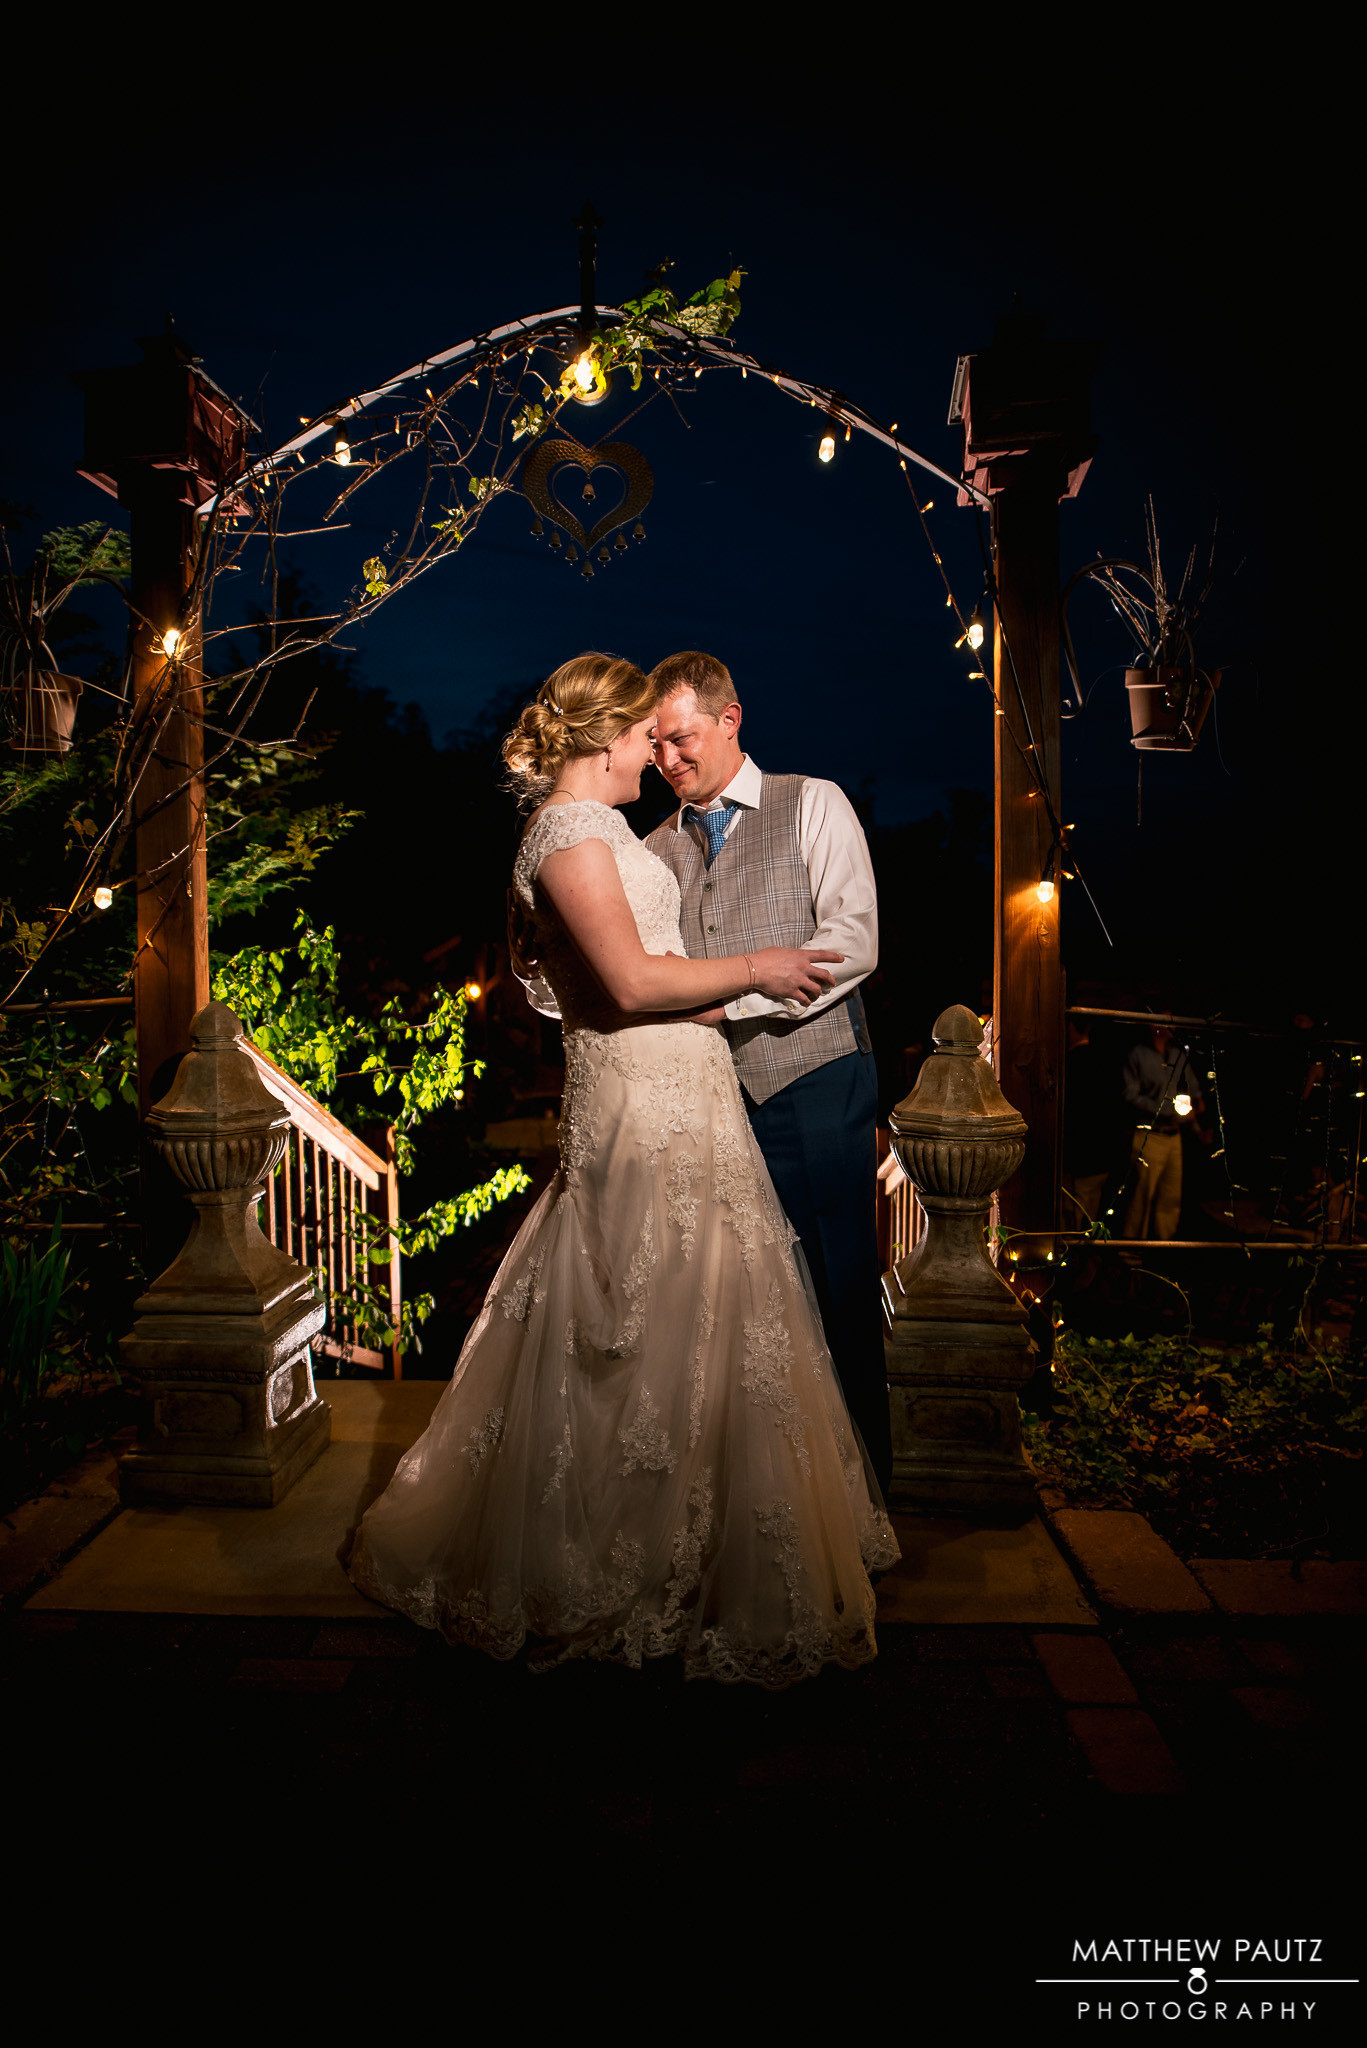 Matthew Pautz truly out did himself in capturing these evening couple photos.